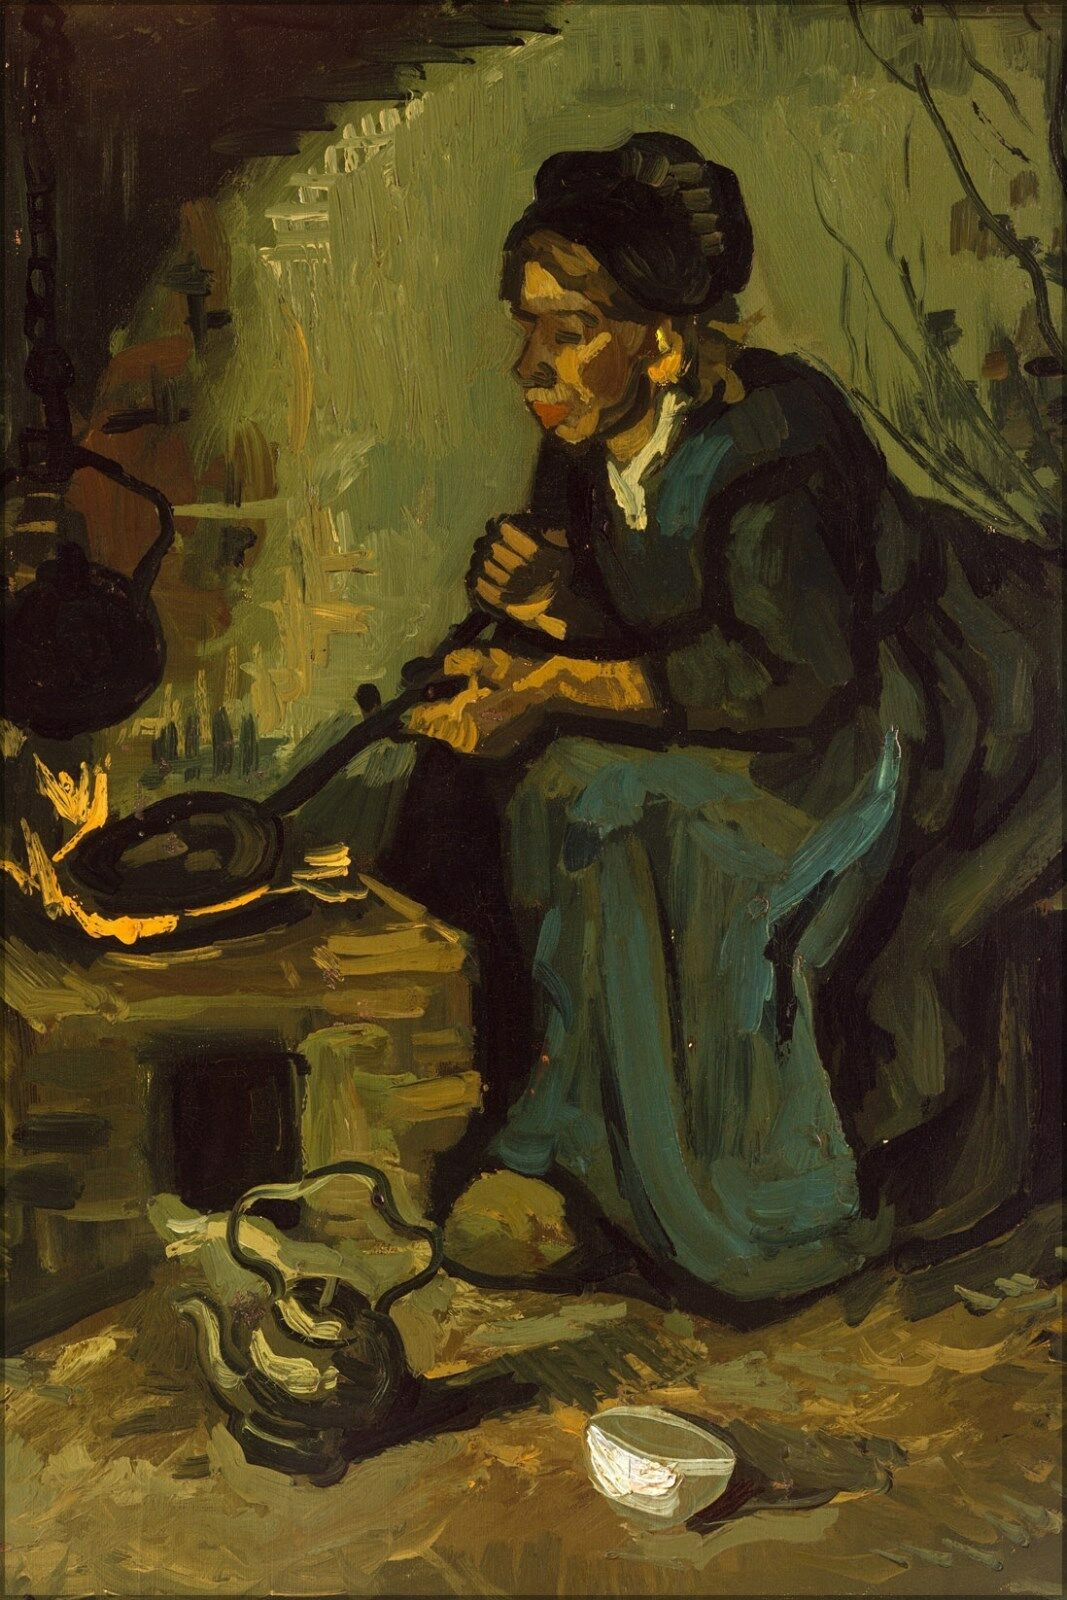 Poster, Many Größen; Peasant Woman Woman Woman Cooking By A Fireplace By Vincent Van Gogh 47c380